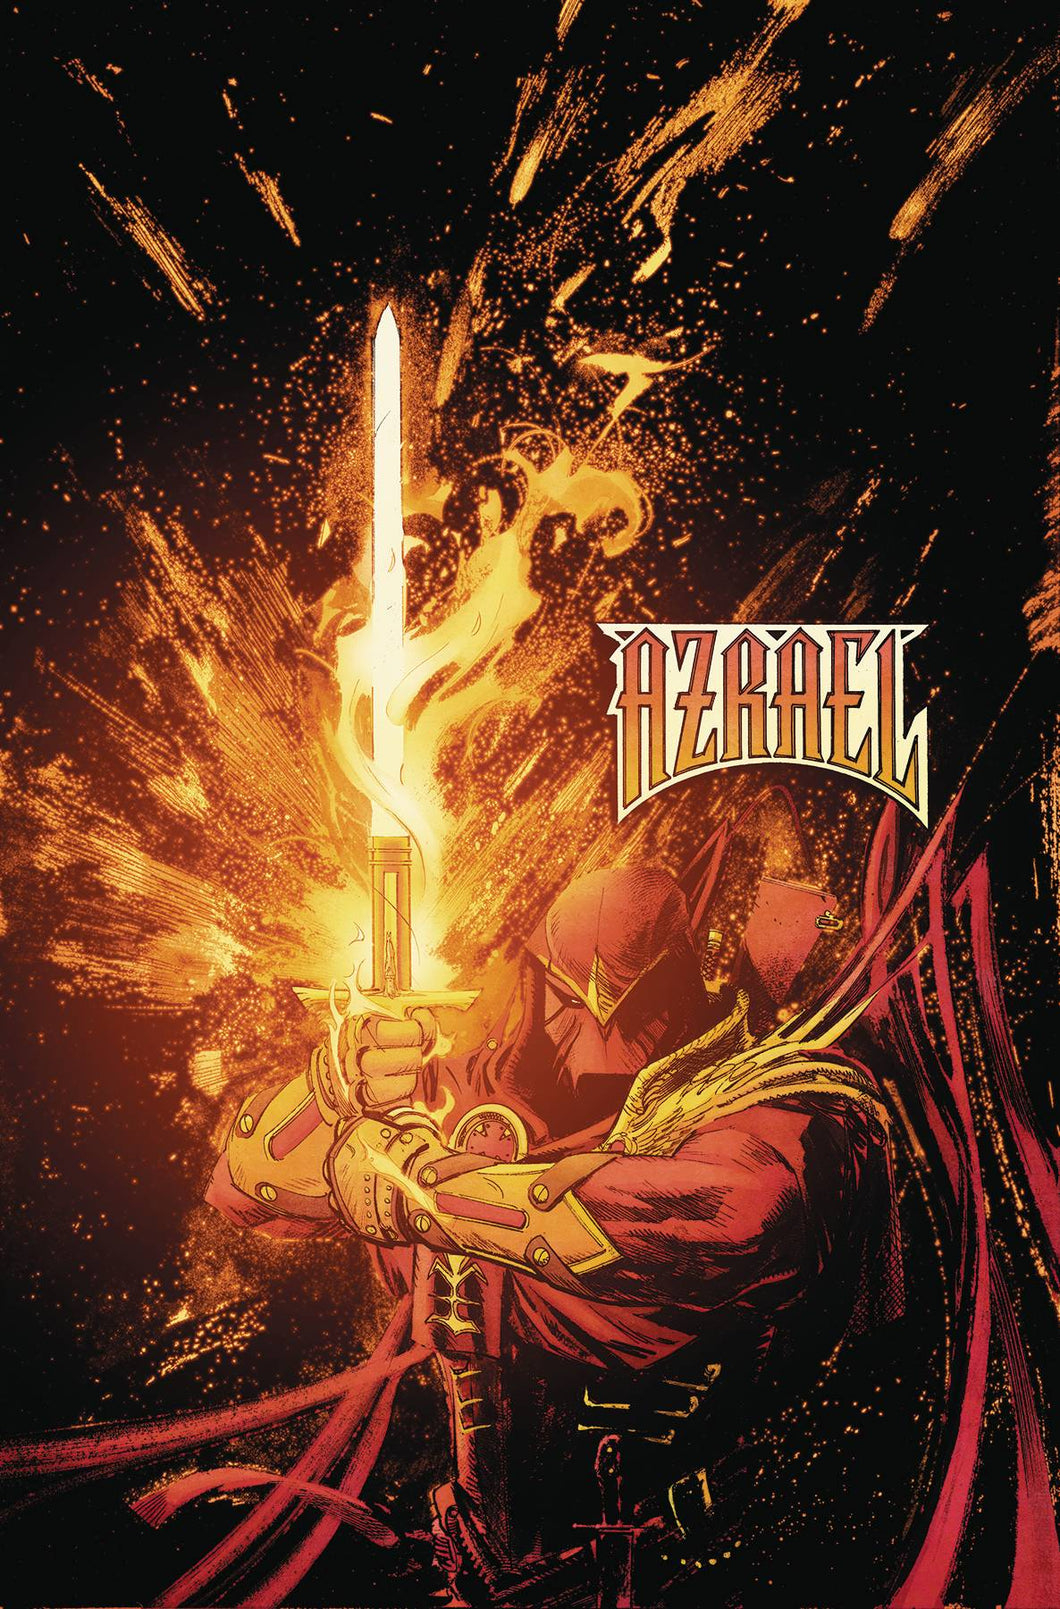 BATMAN CURSE OF THE WHITE KNIGHT #1 (OF 8) AZRAEL VARIANT  07/24/19 FOC 07/01/19